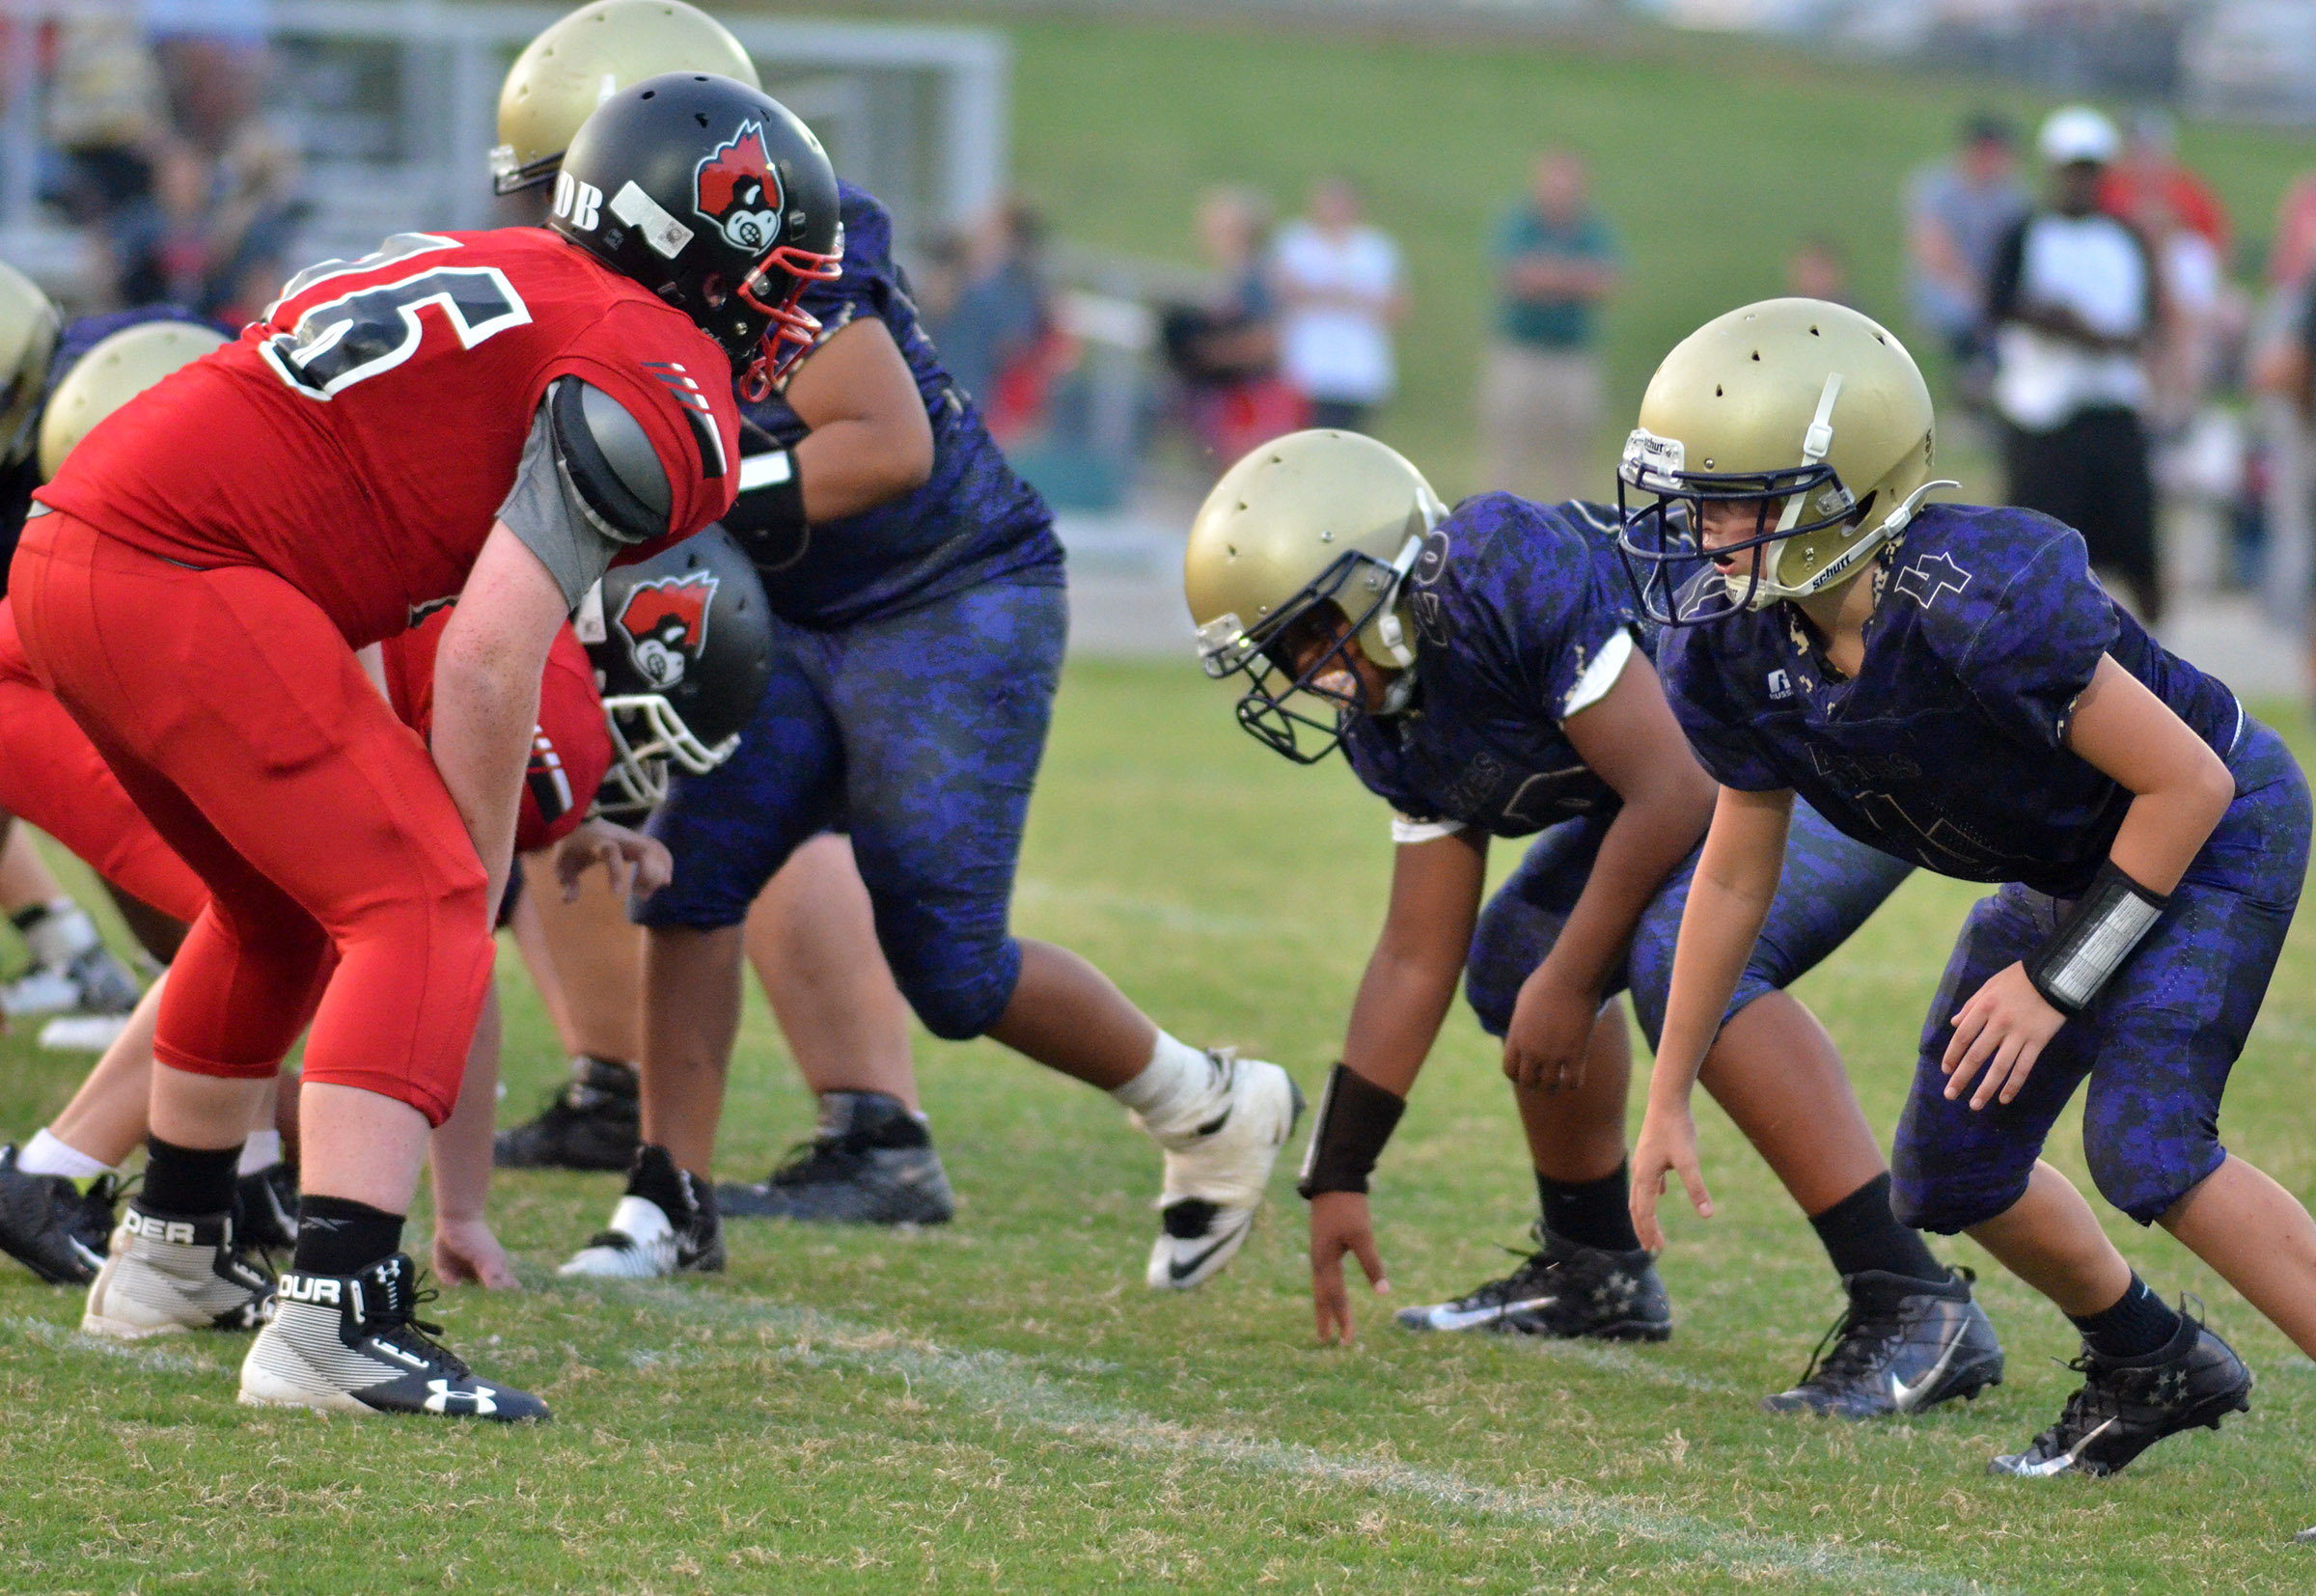 CMS seventh-grader Konner Forbis, at right, gets ready for the snap.